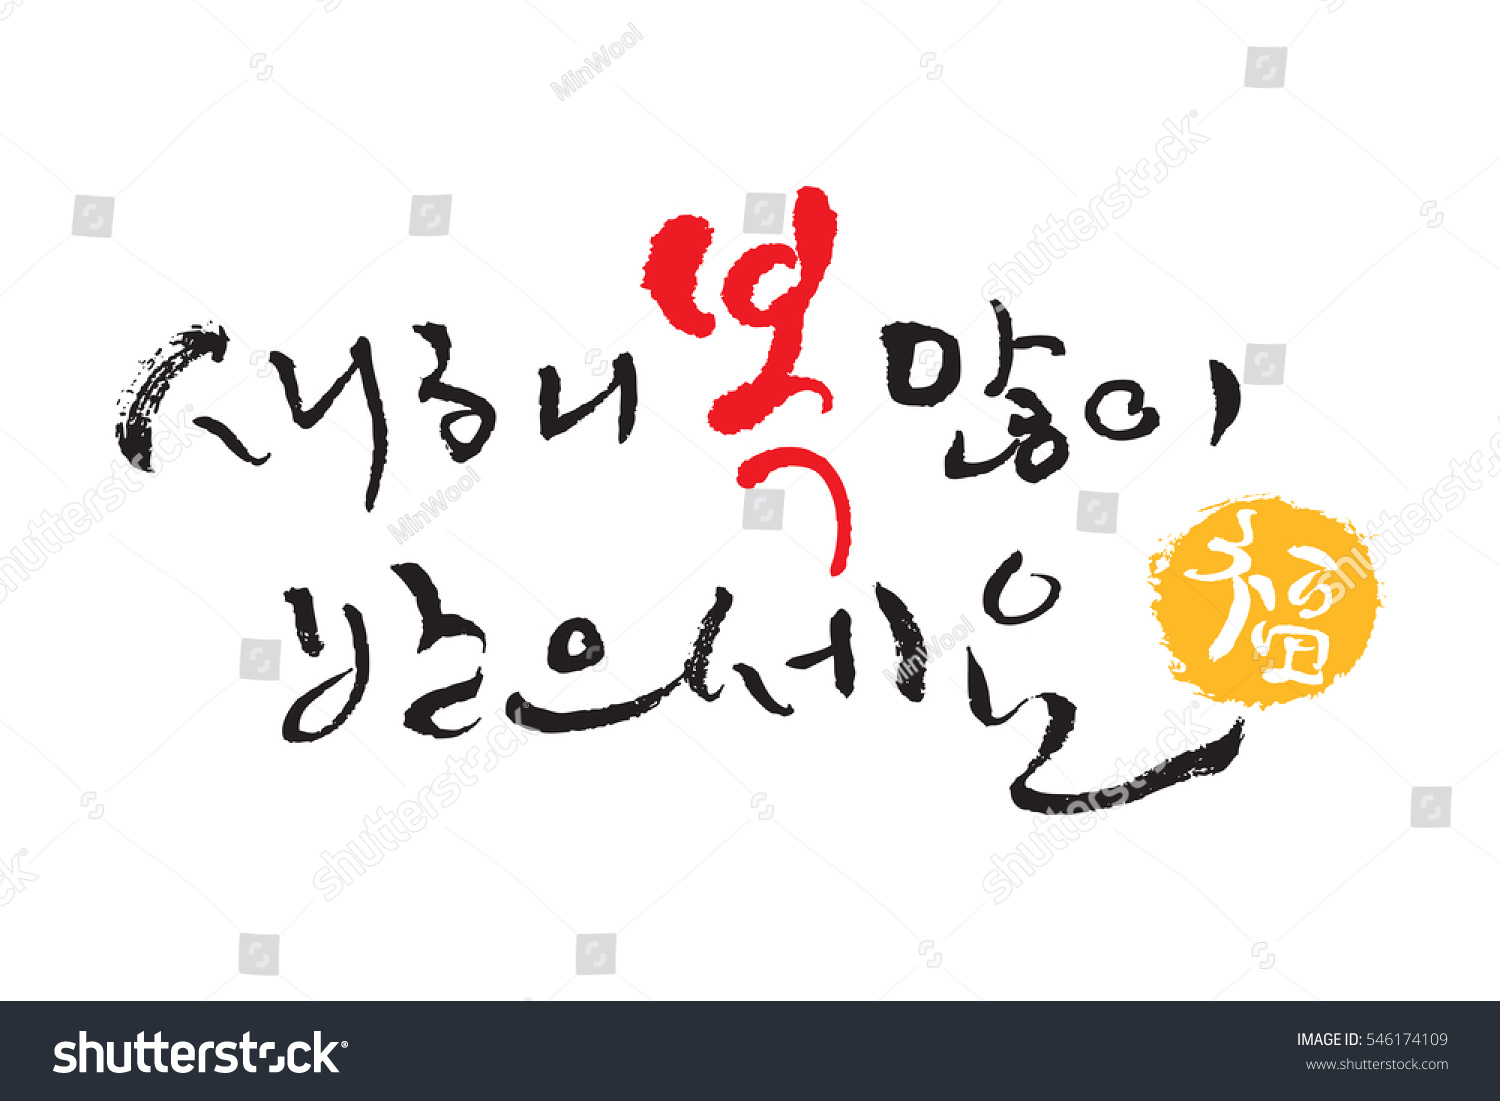 New years greeting translation korean text stock vector 546174109 new years greeting translation of korean text happy new year calligraphy m4hsunfo Gallery